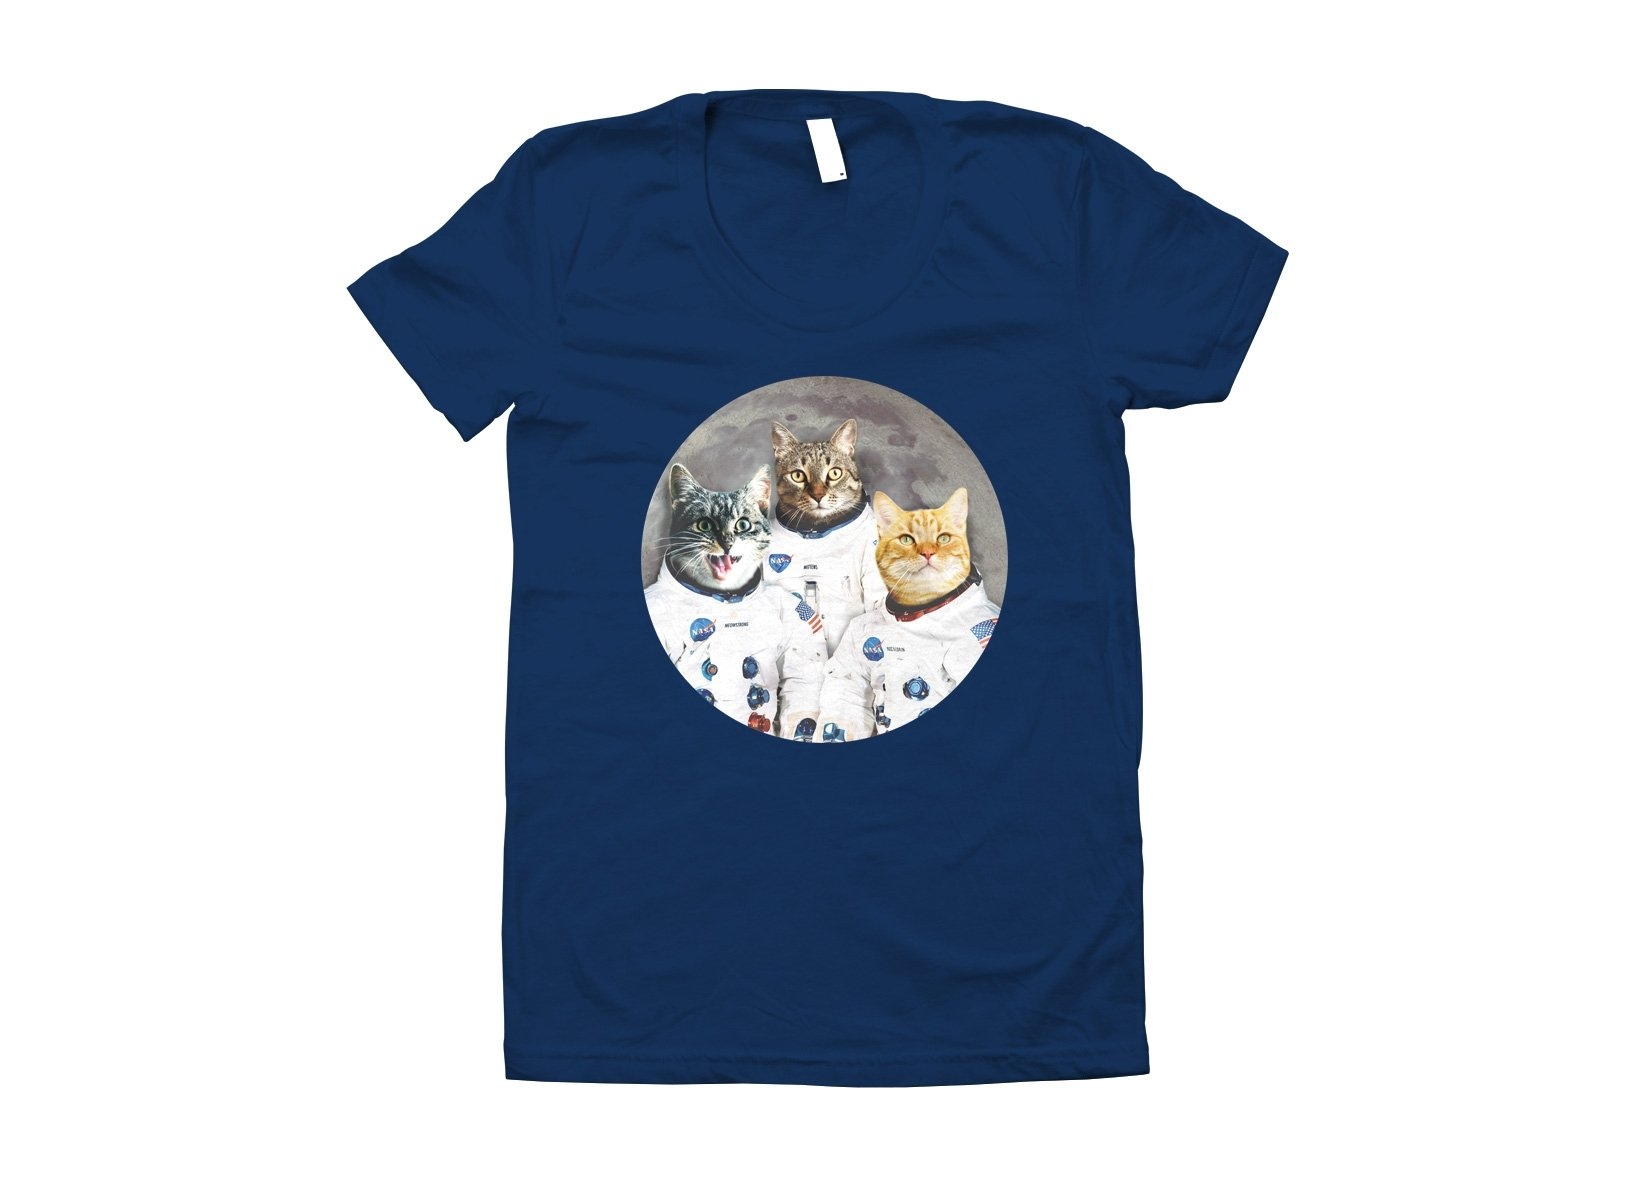 Catstronauts on Juniors T-Shirt